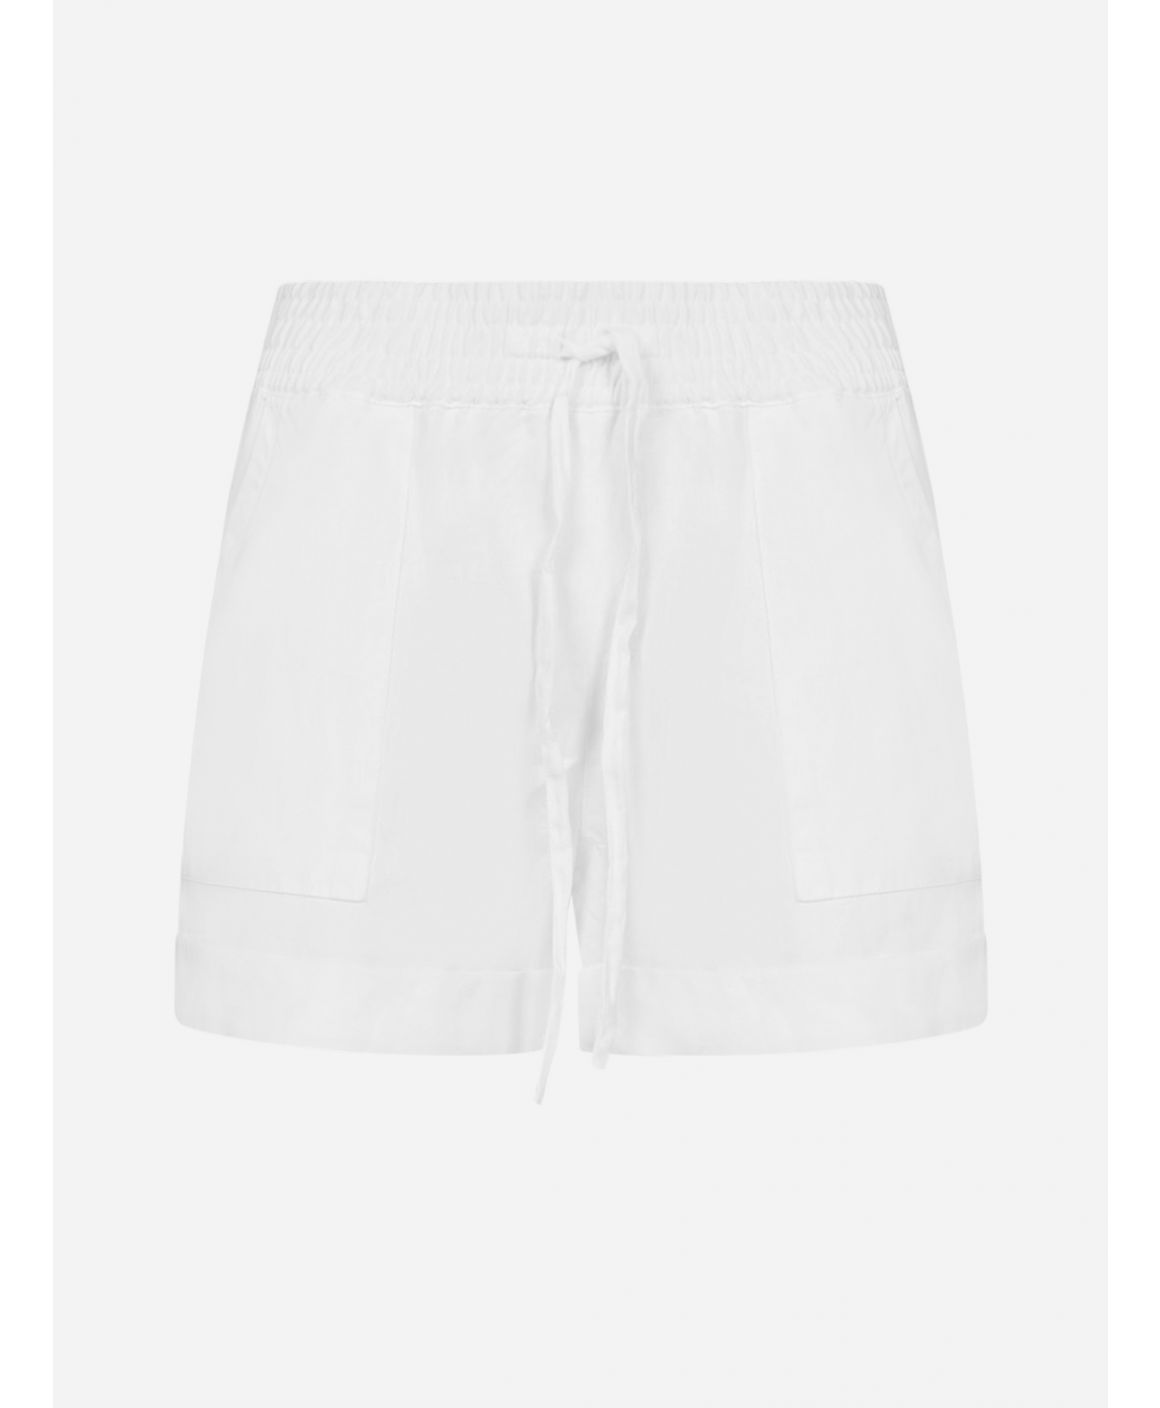 Sam Patch lyocell and linen shorts